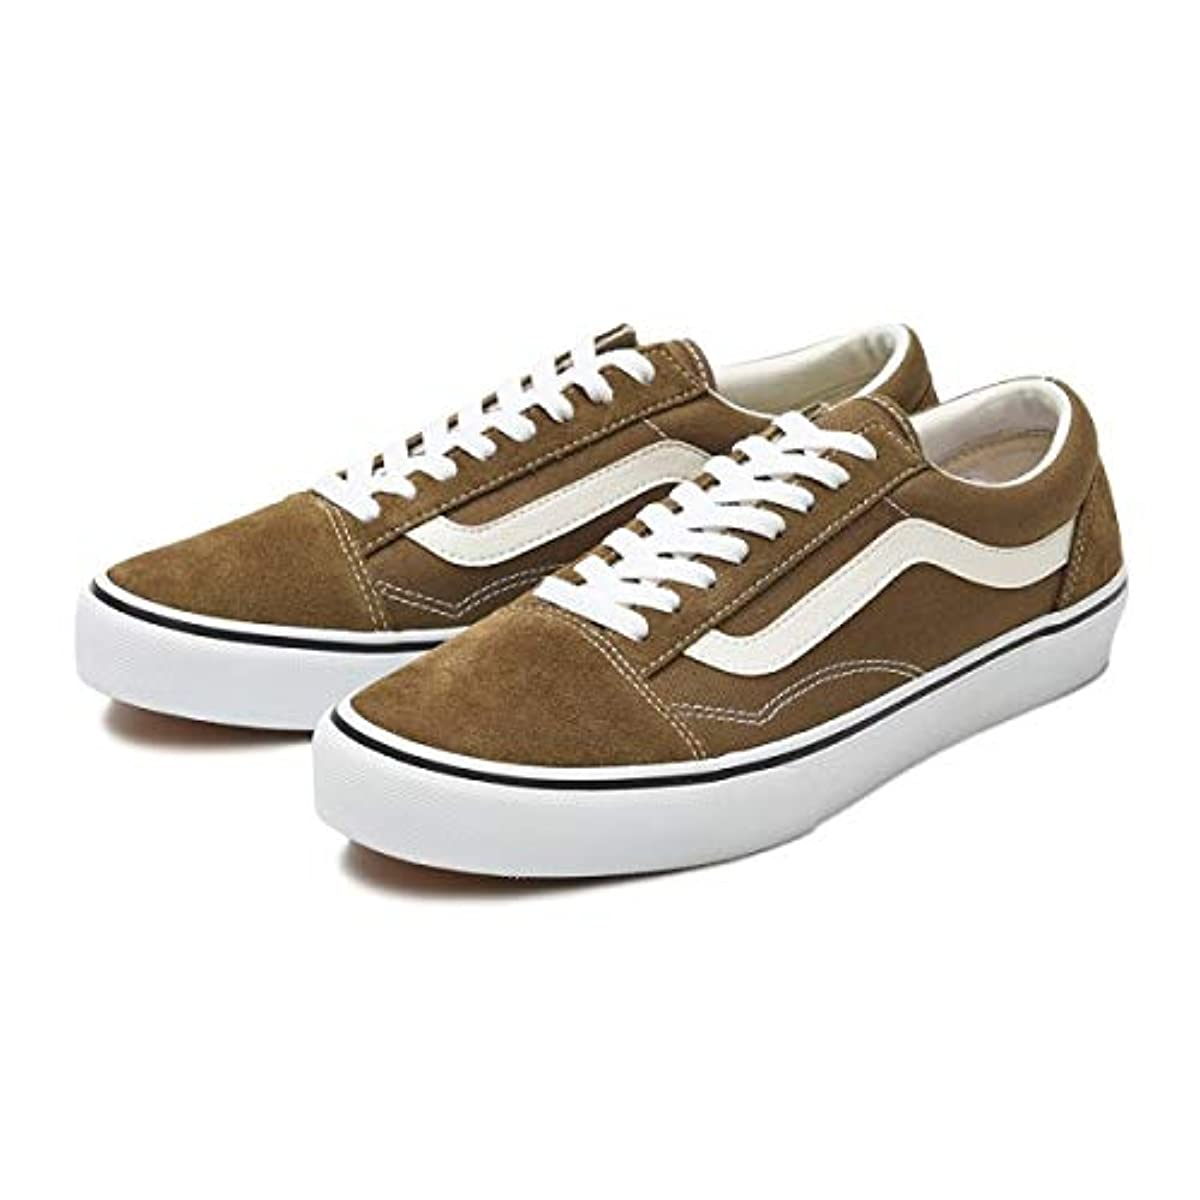 [해외] VANS  OLD SKOOL DX 밴의 올드 스쿨 DX CALM V36CL+ CALM 19SU